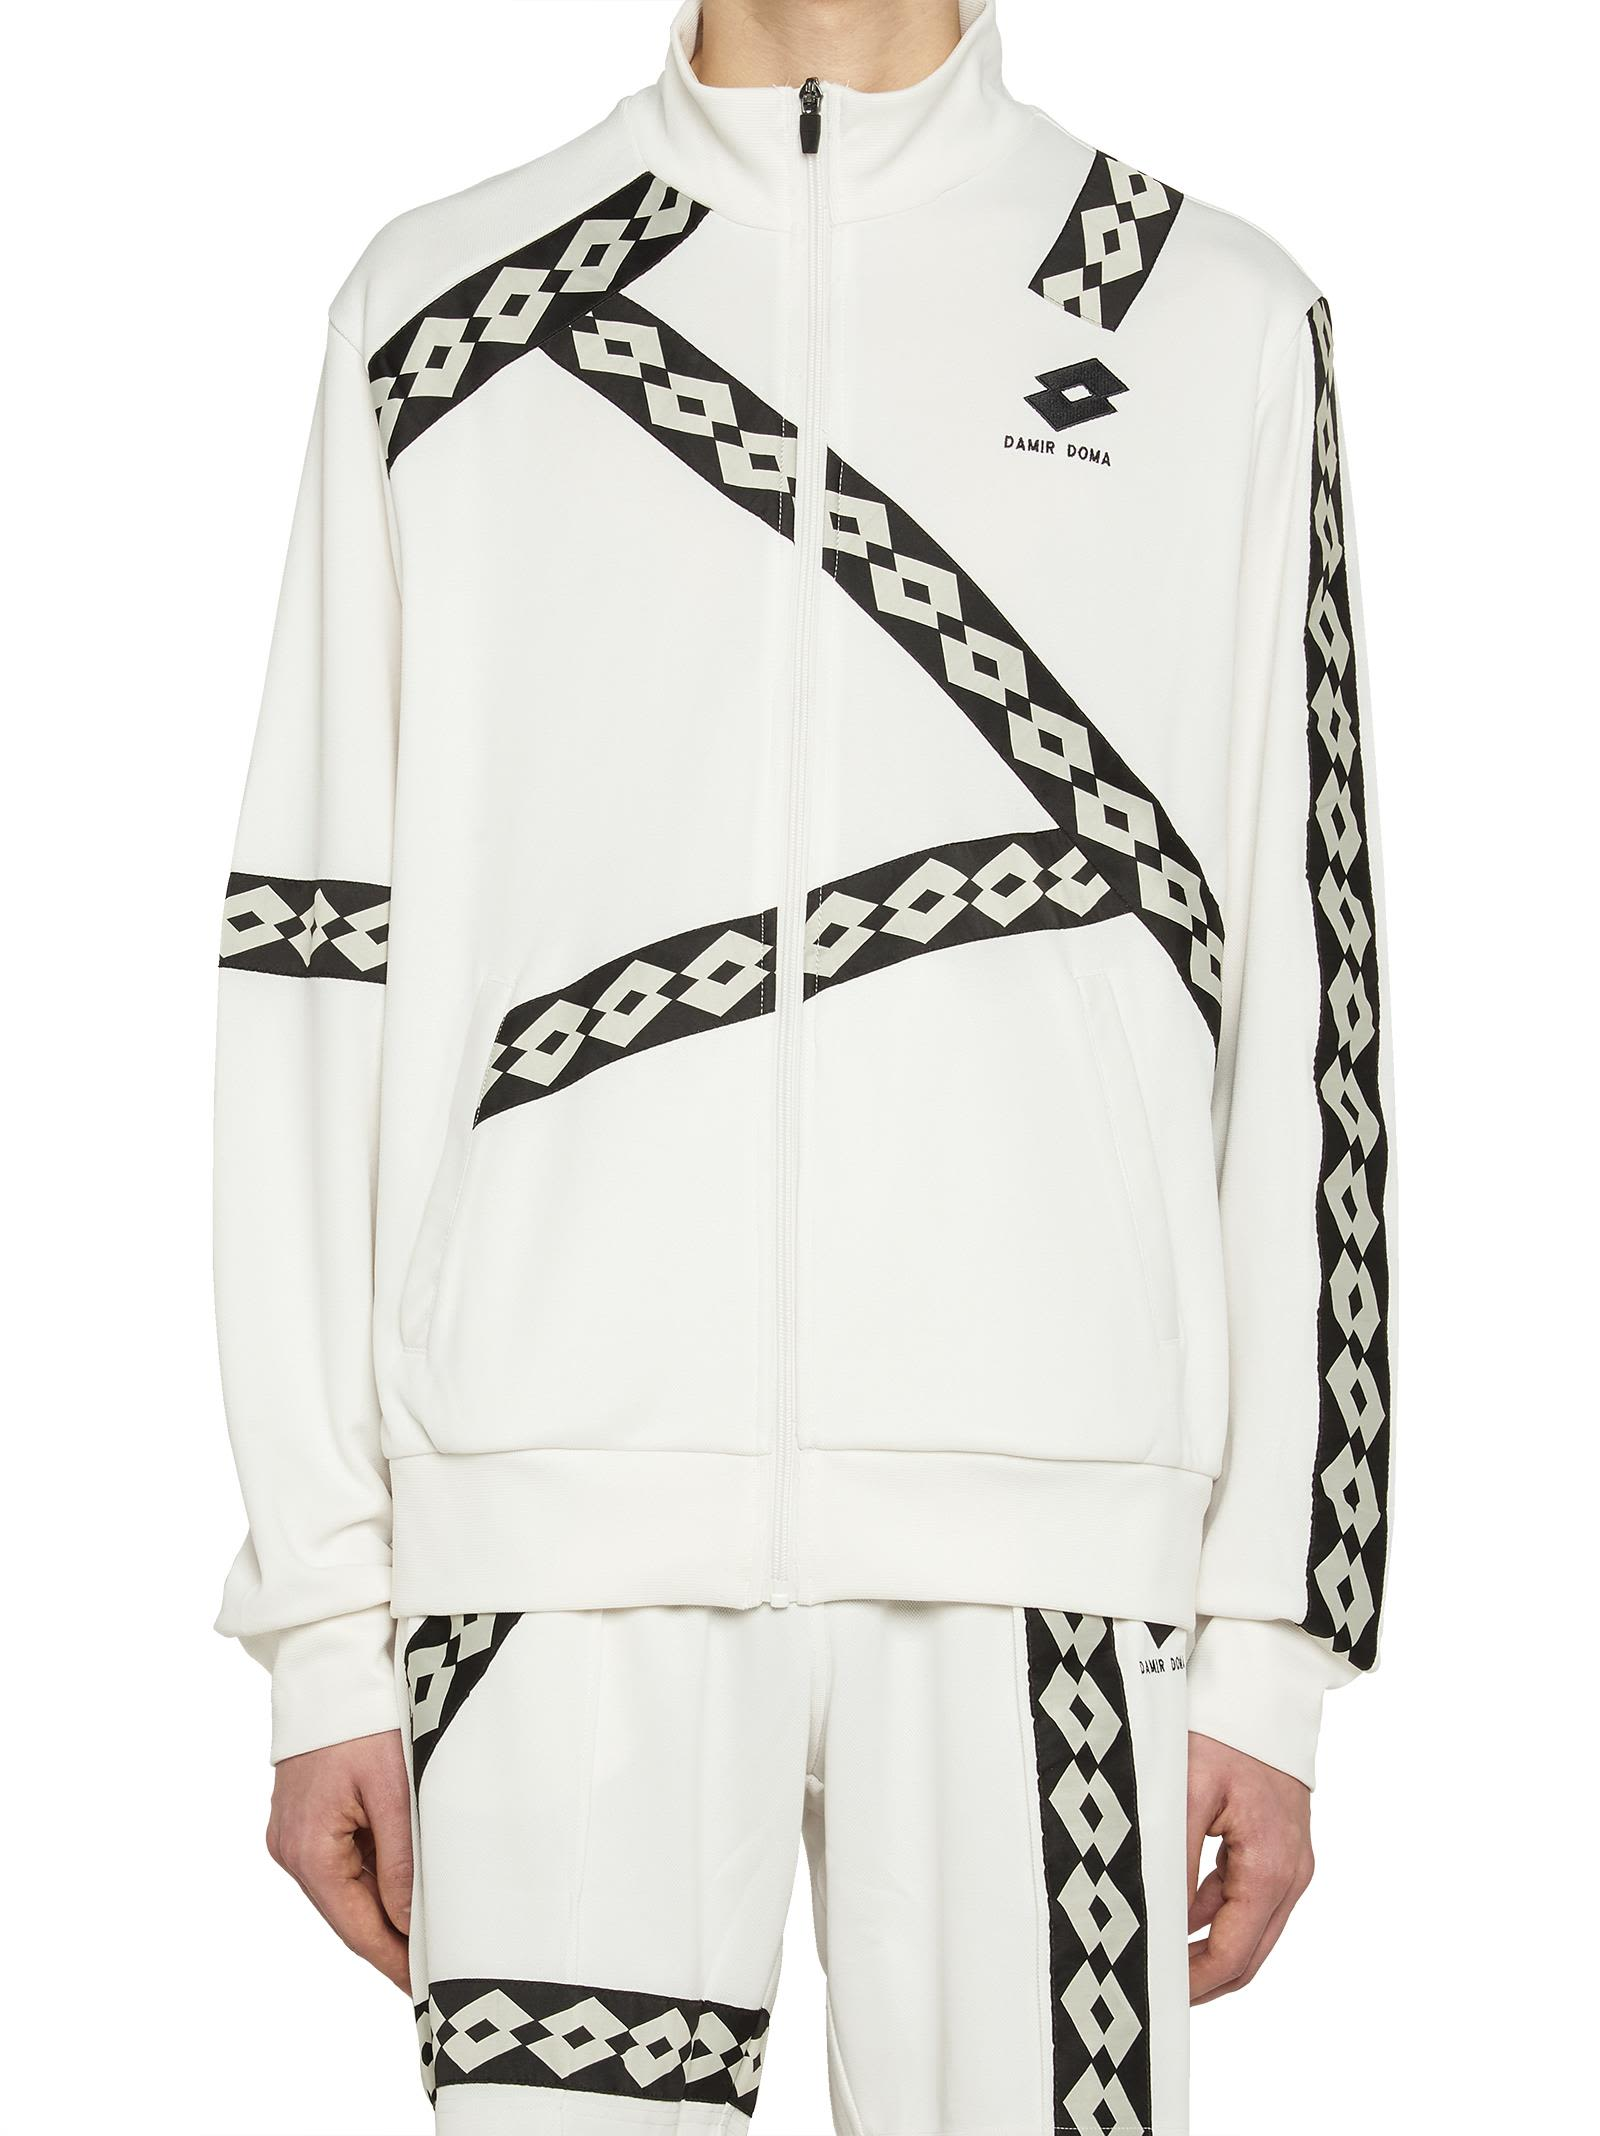 Damir Doma / Lotto Sweatshirt